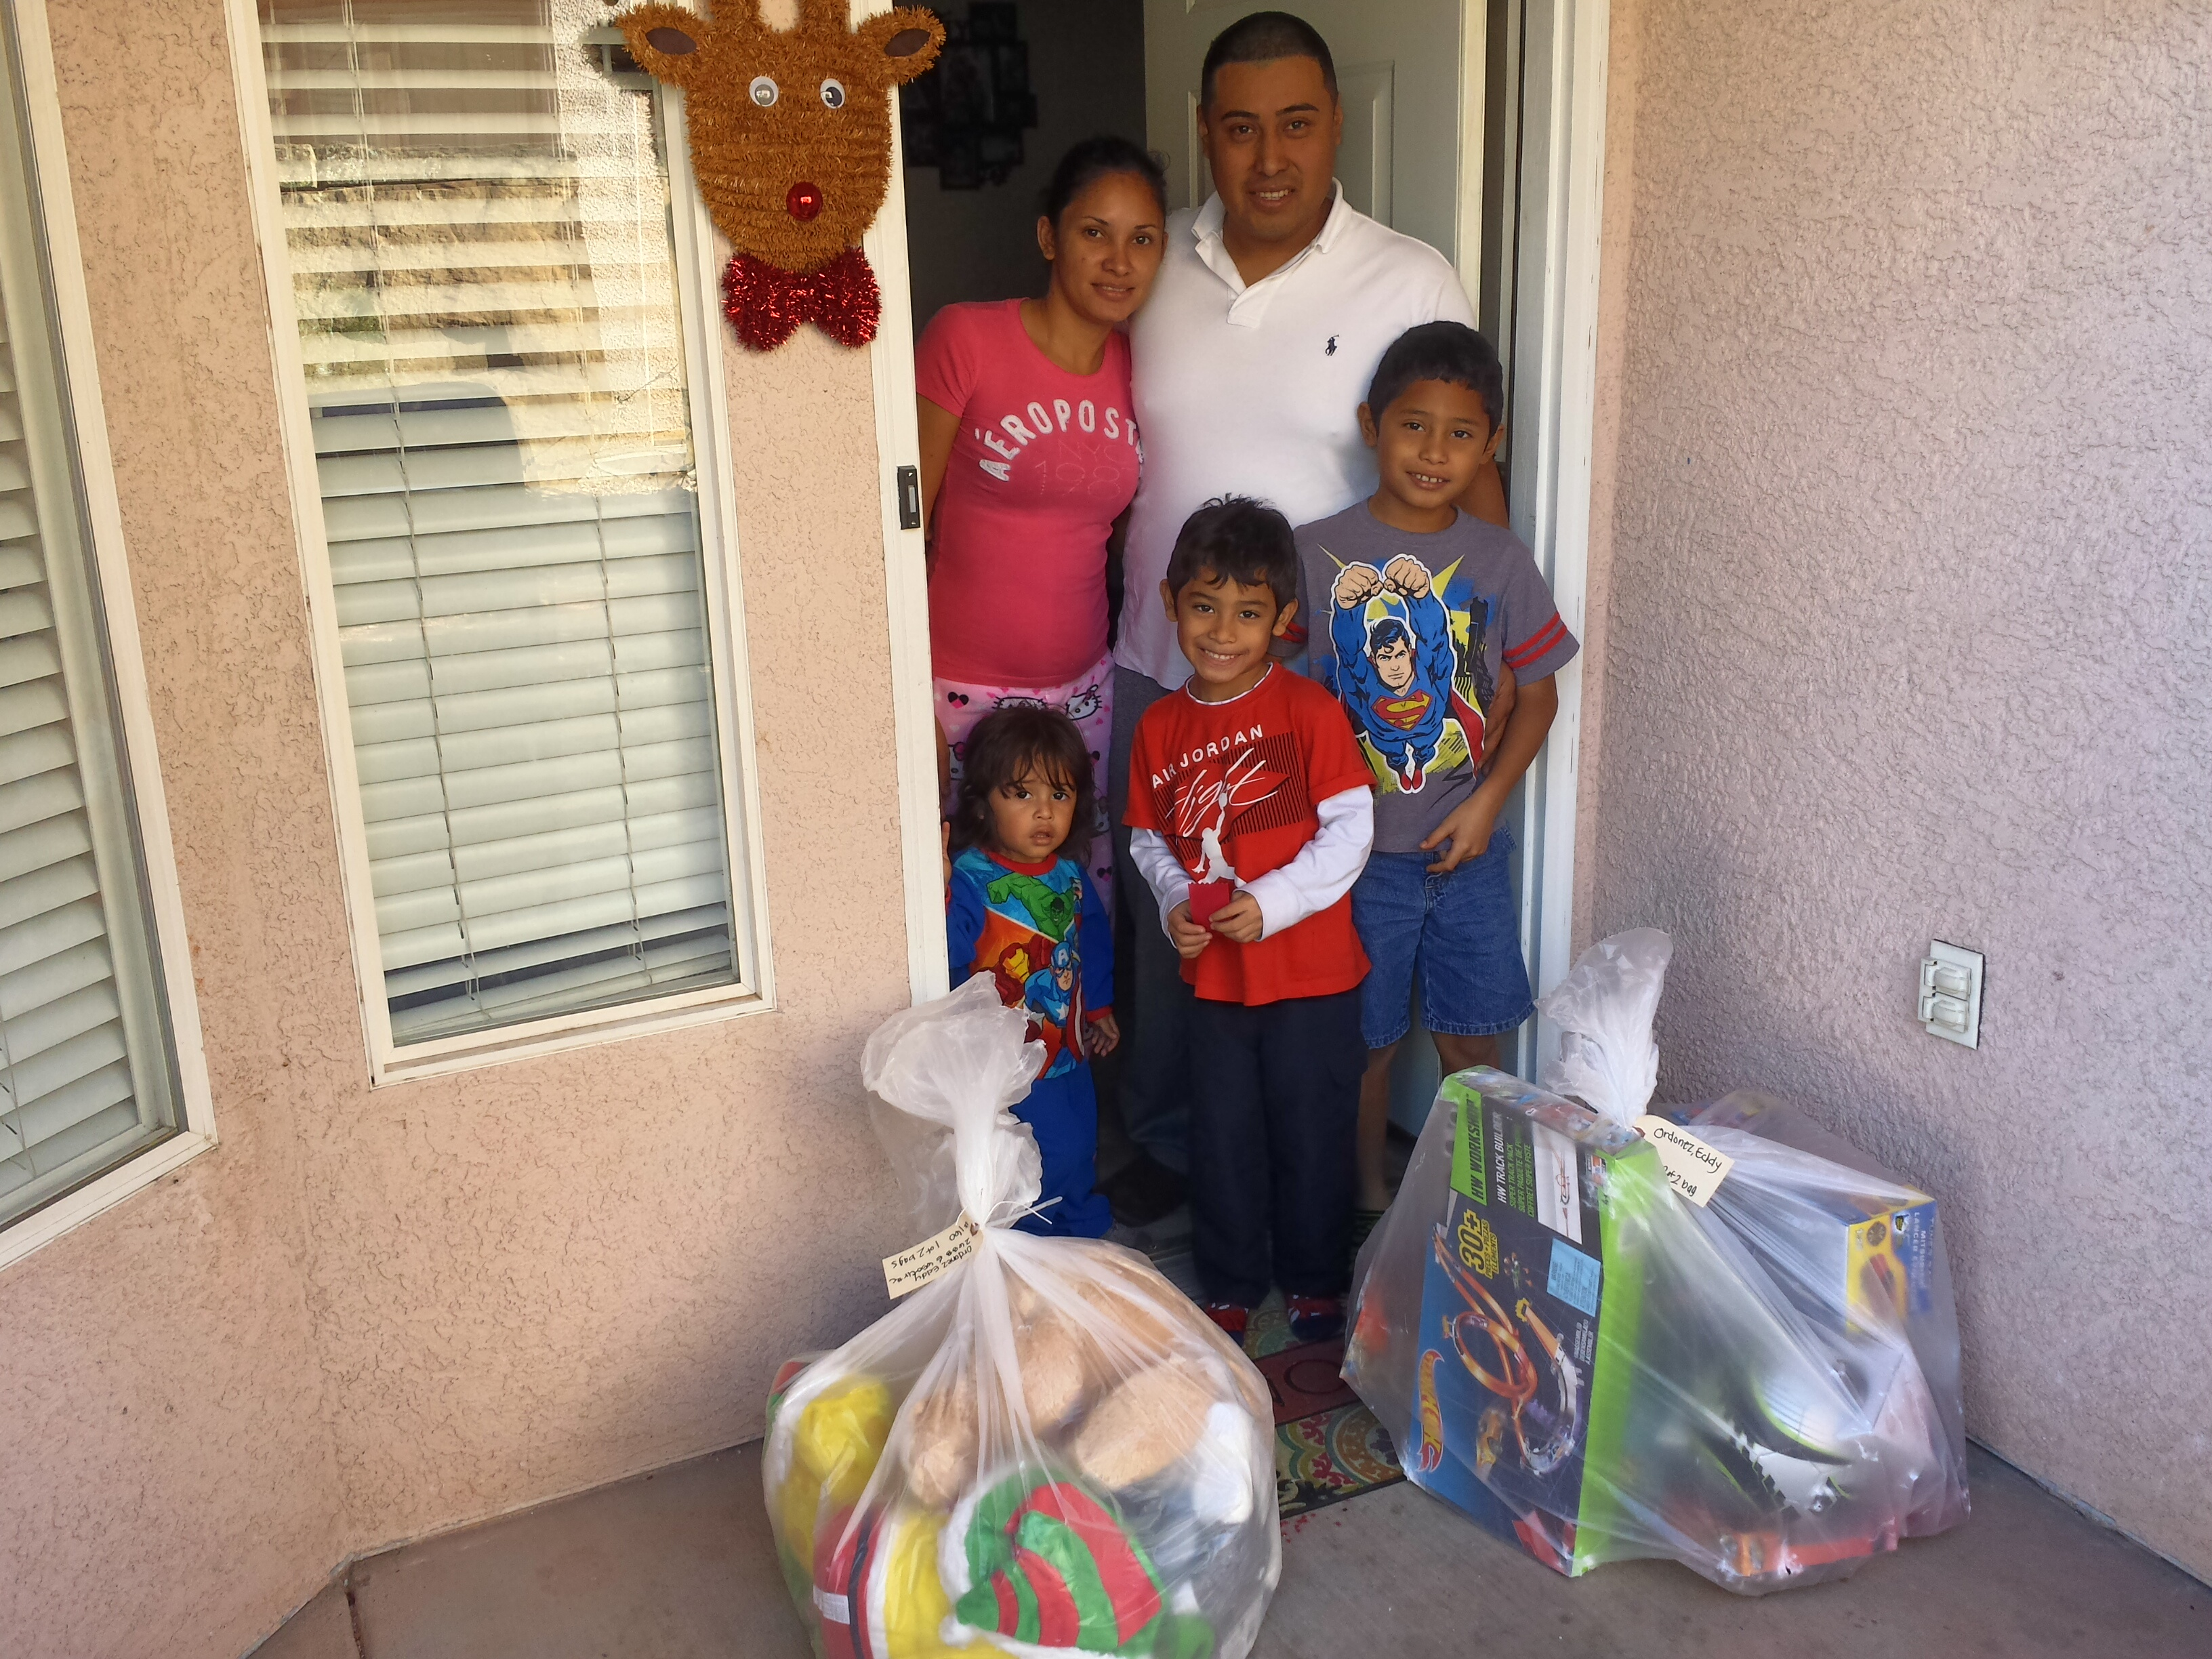 This family received a delivery of Christmas toys from Toys for Tots, St. George, Utah, Dec. 19, 2015 | Photo courtesy of Shane Dastrup, St. George News